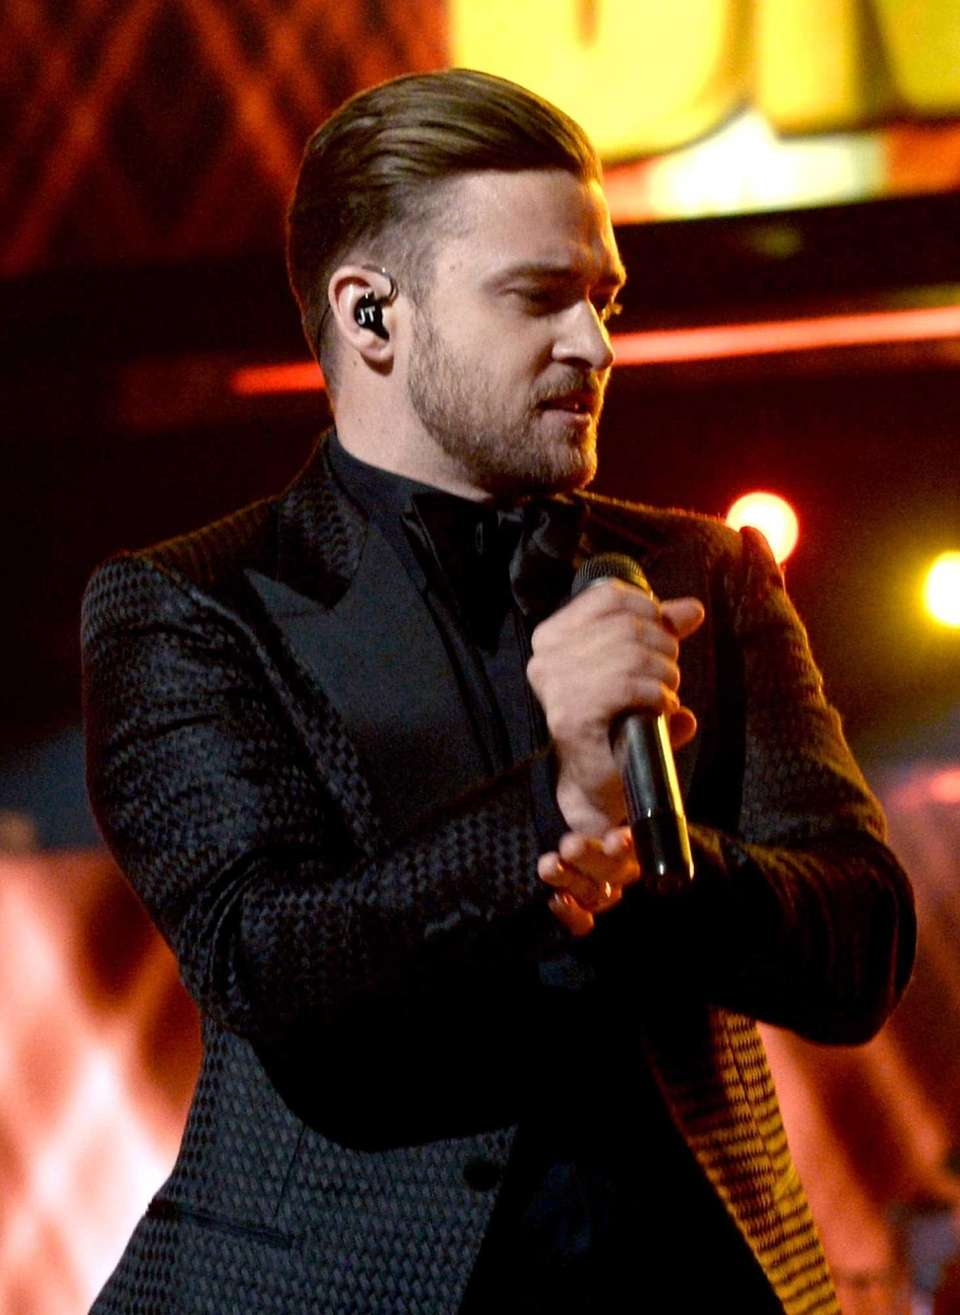 Singer Justin Timberlake performs onstage during the 2013